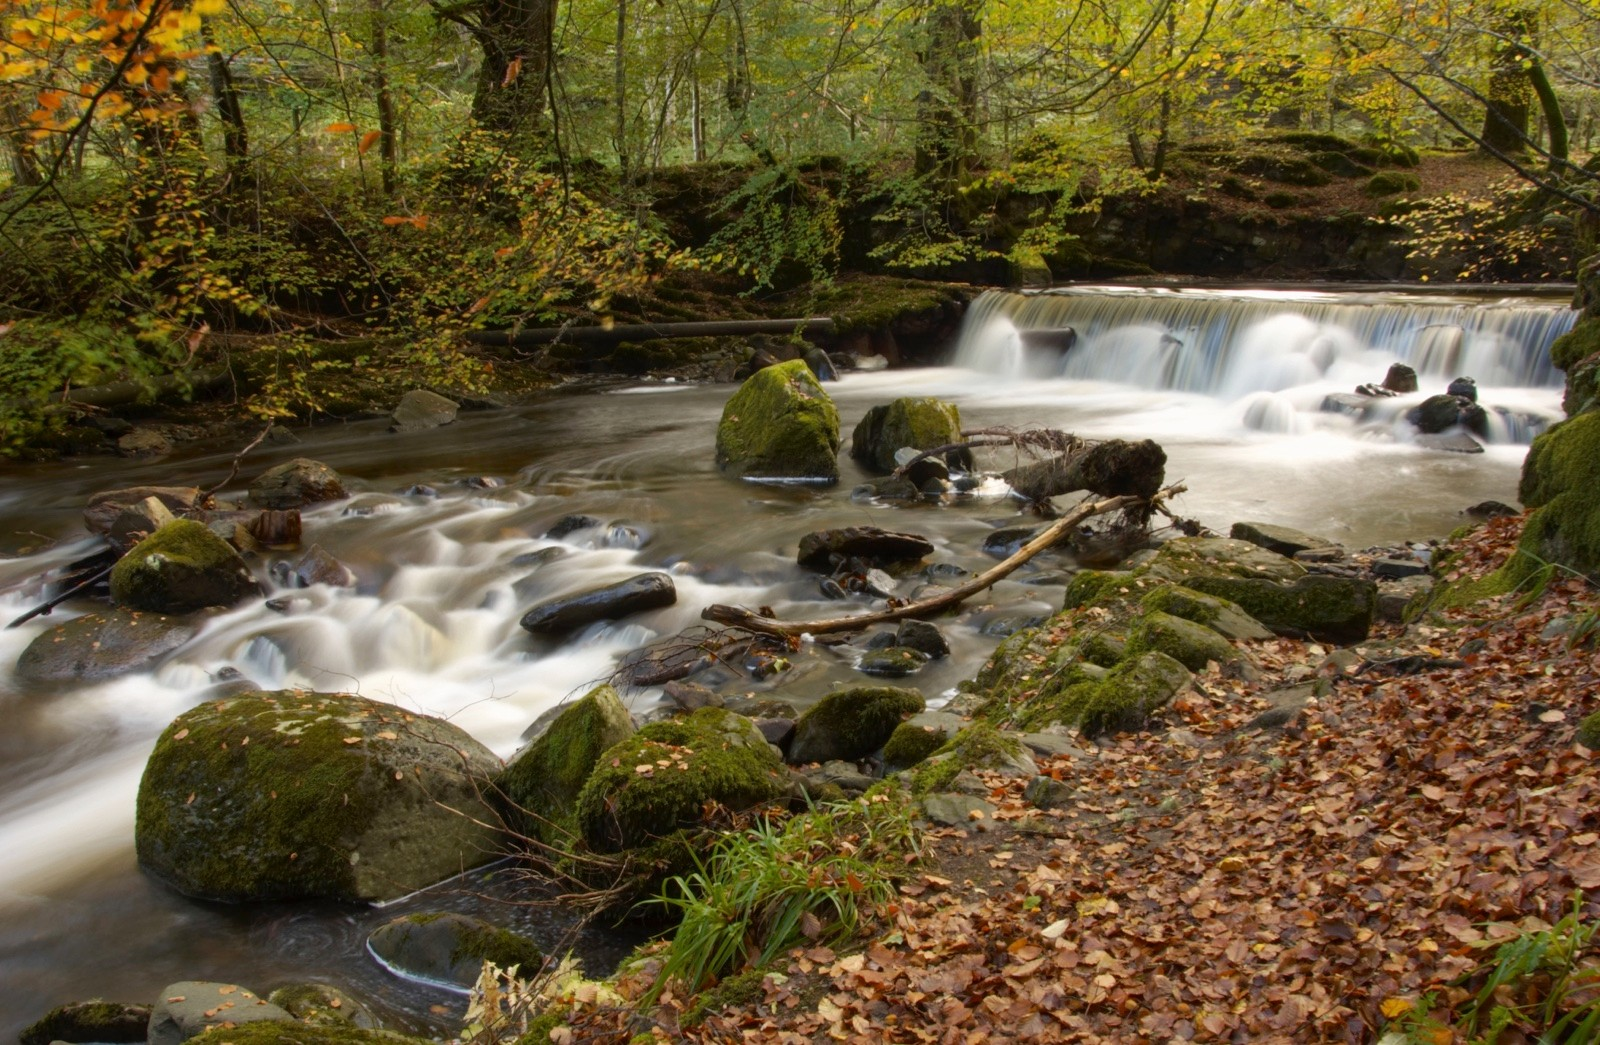 Birds of Aberfeldy – The gorge was once known as the Den of Moness ©Getty